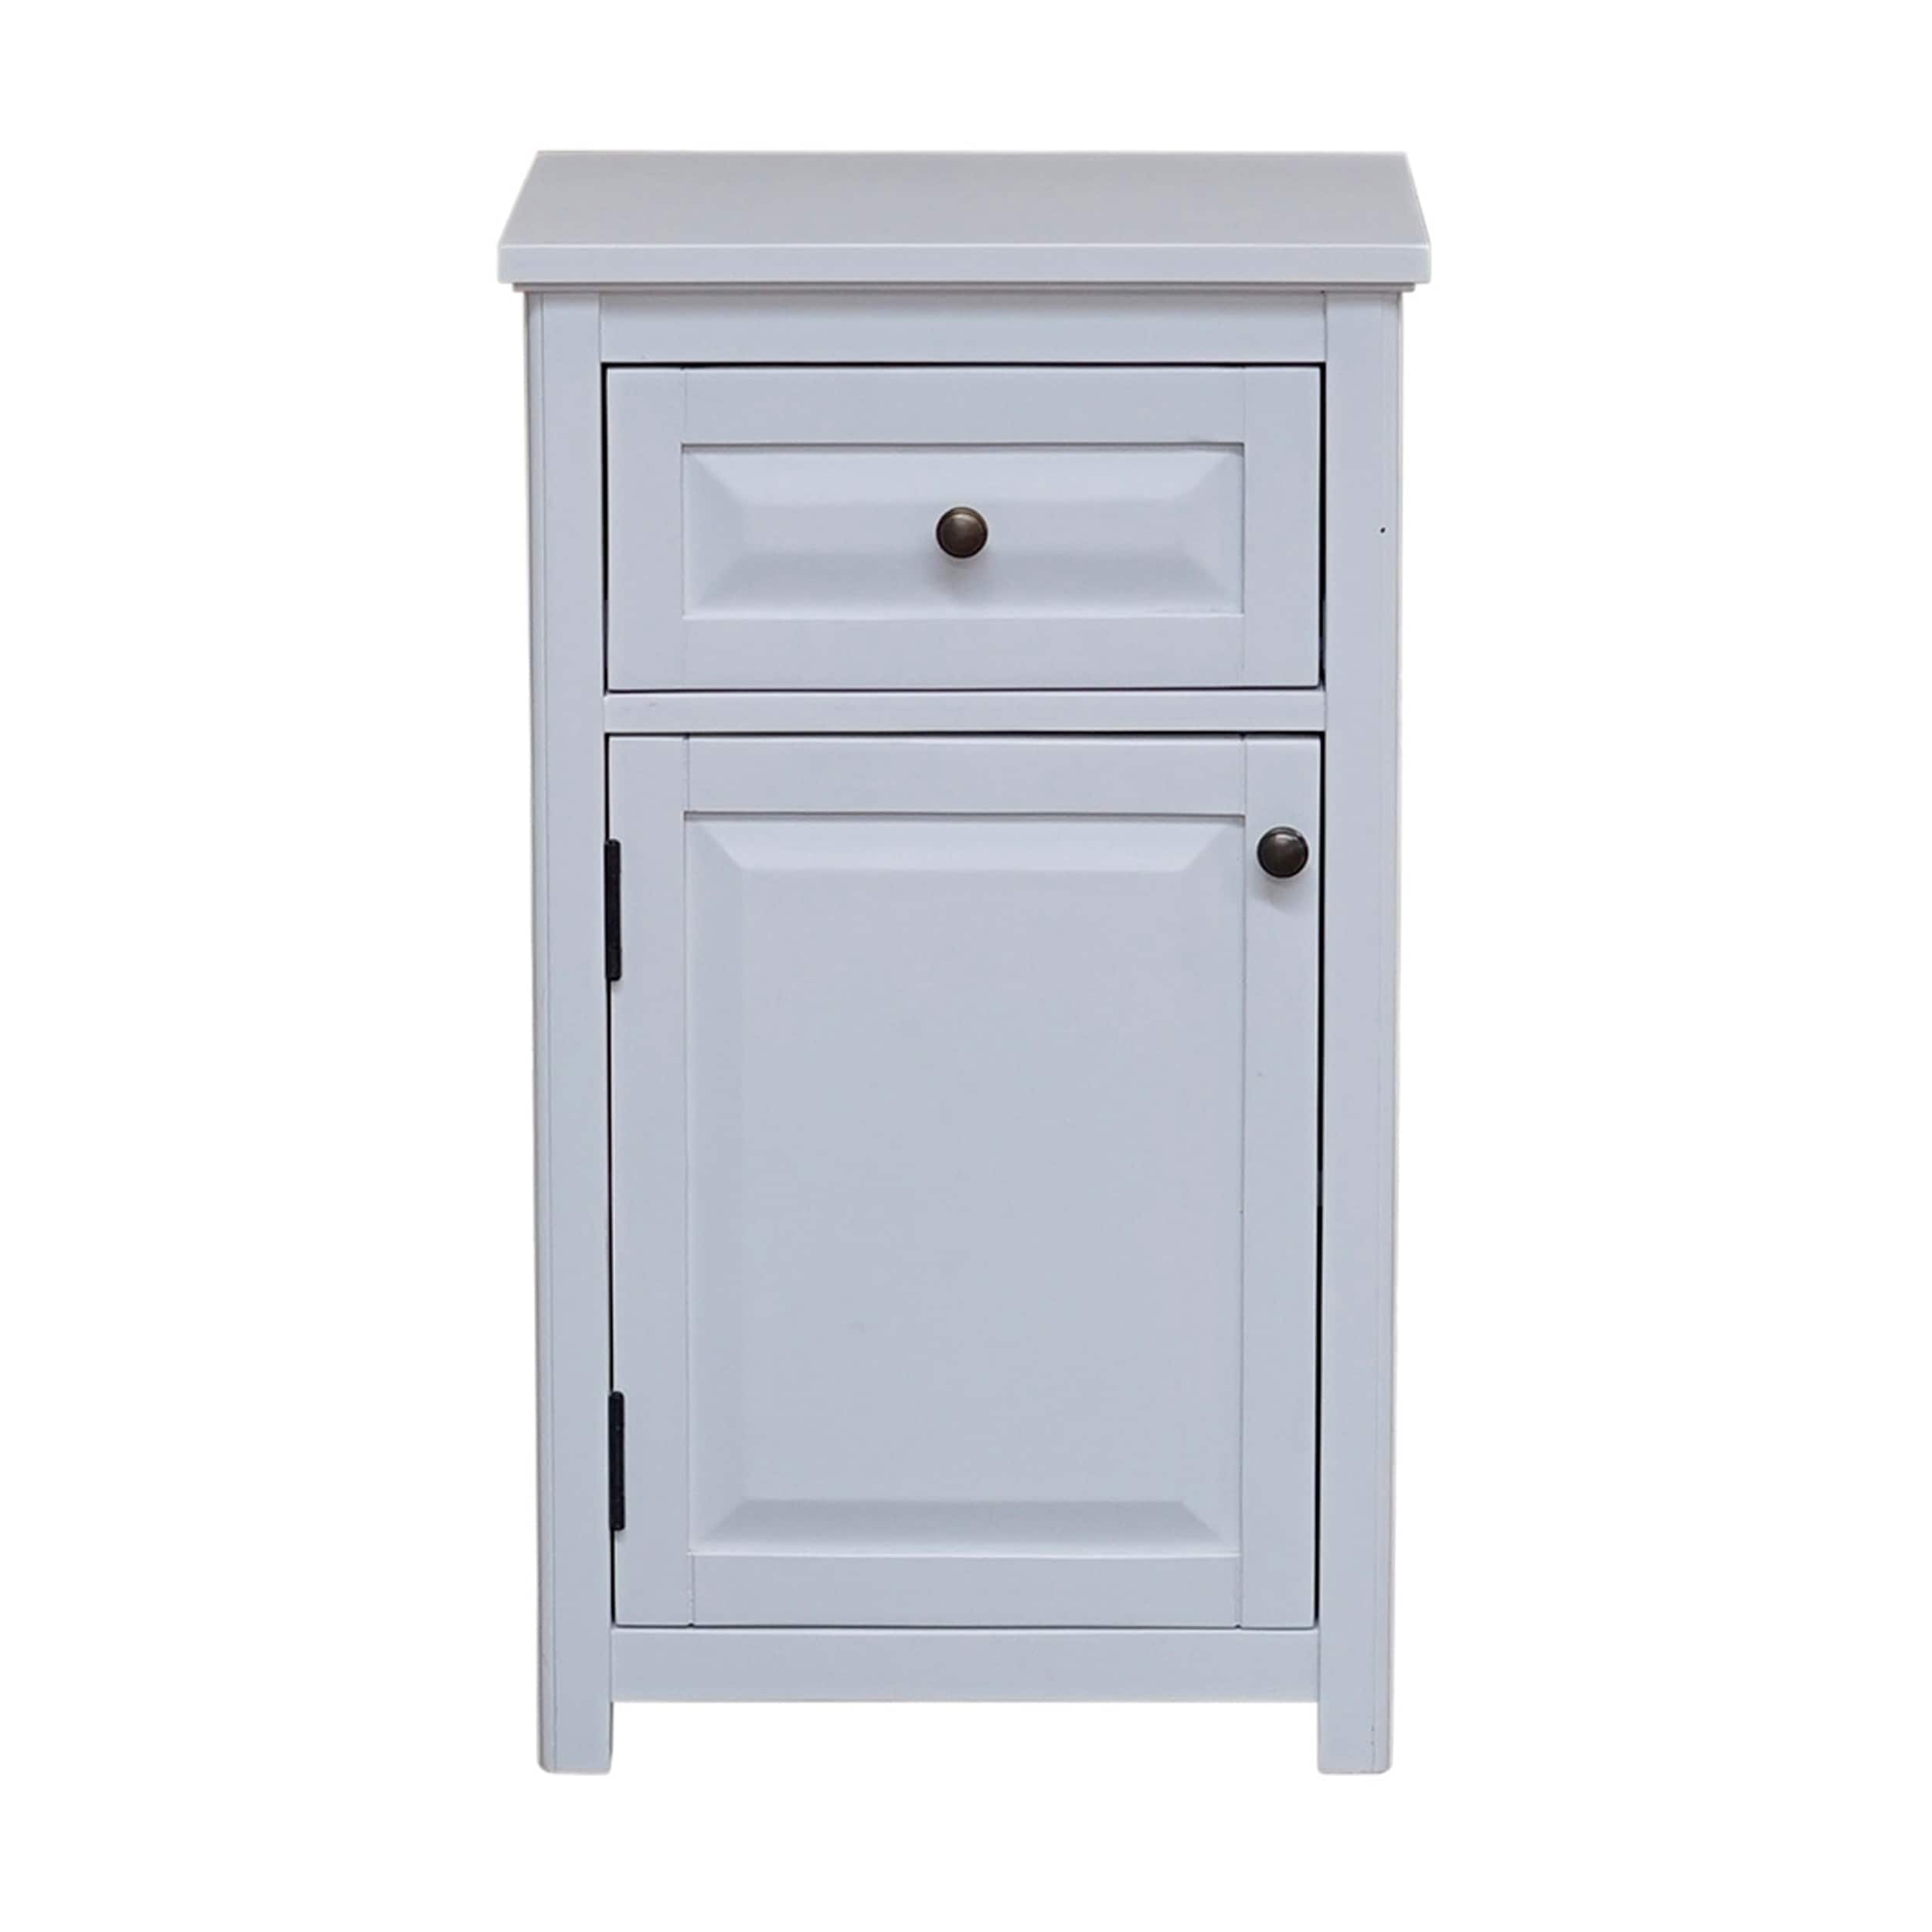 Shop Dorset Bathroom Storage Tower With Open Upper Shelves, Lower Cabinet  And Drawer   Free Shipping Today   Overstock   26050440